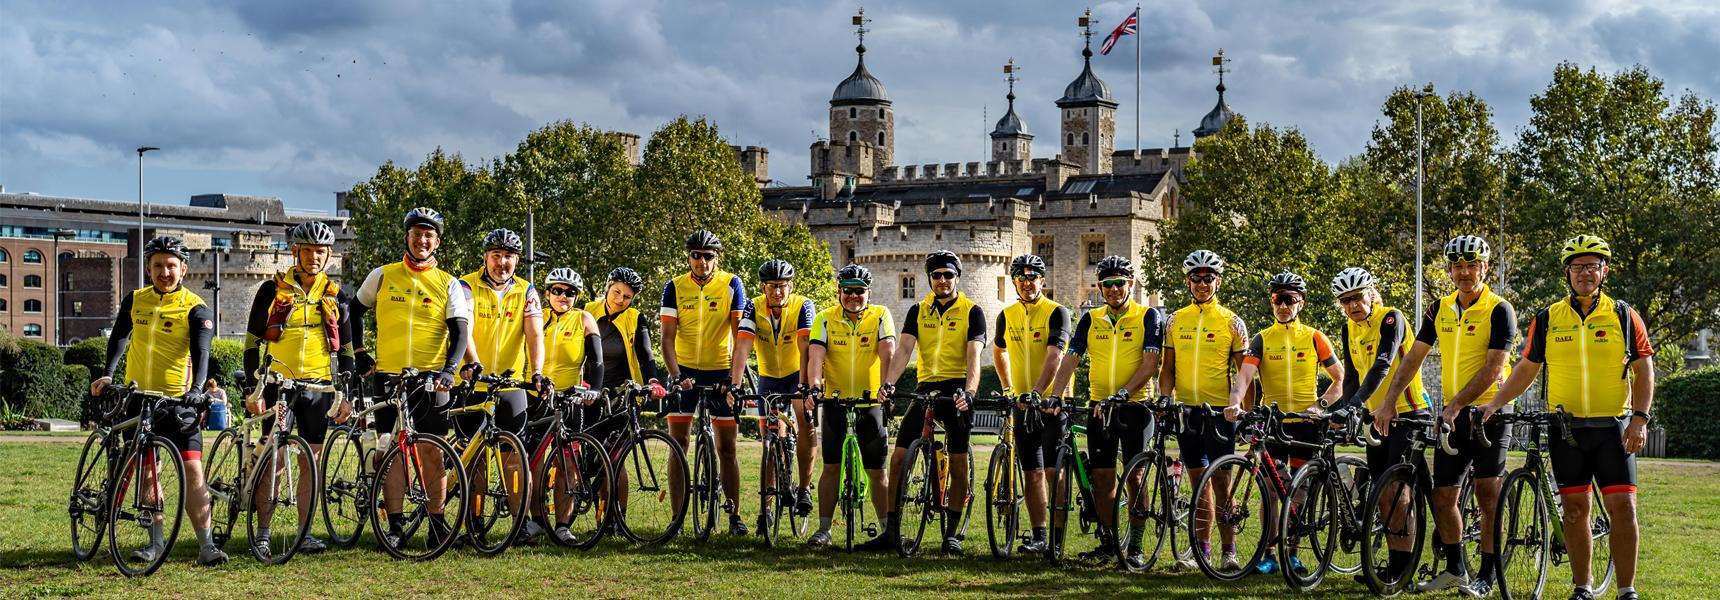 TT24 Charity Cycle from London to Paris